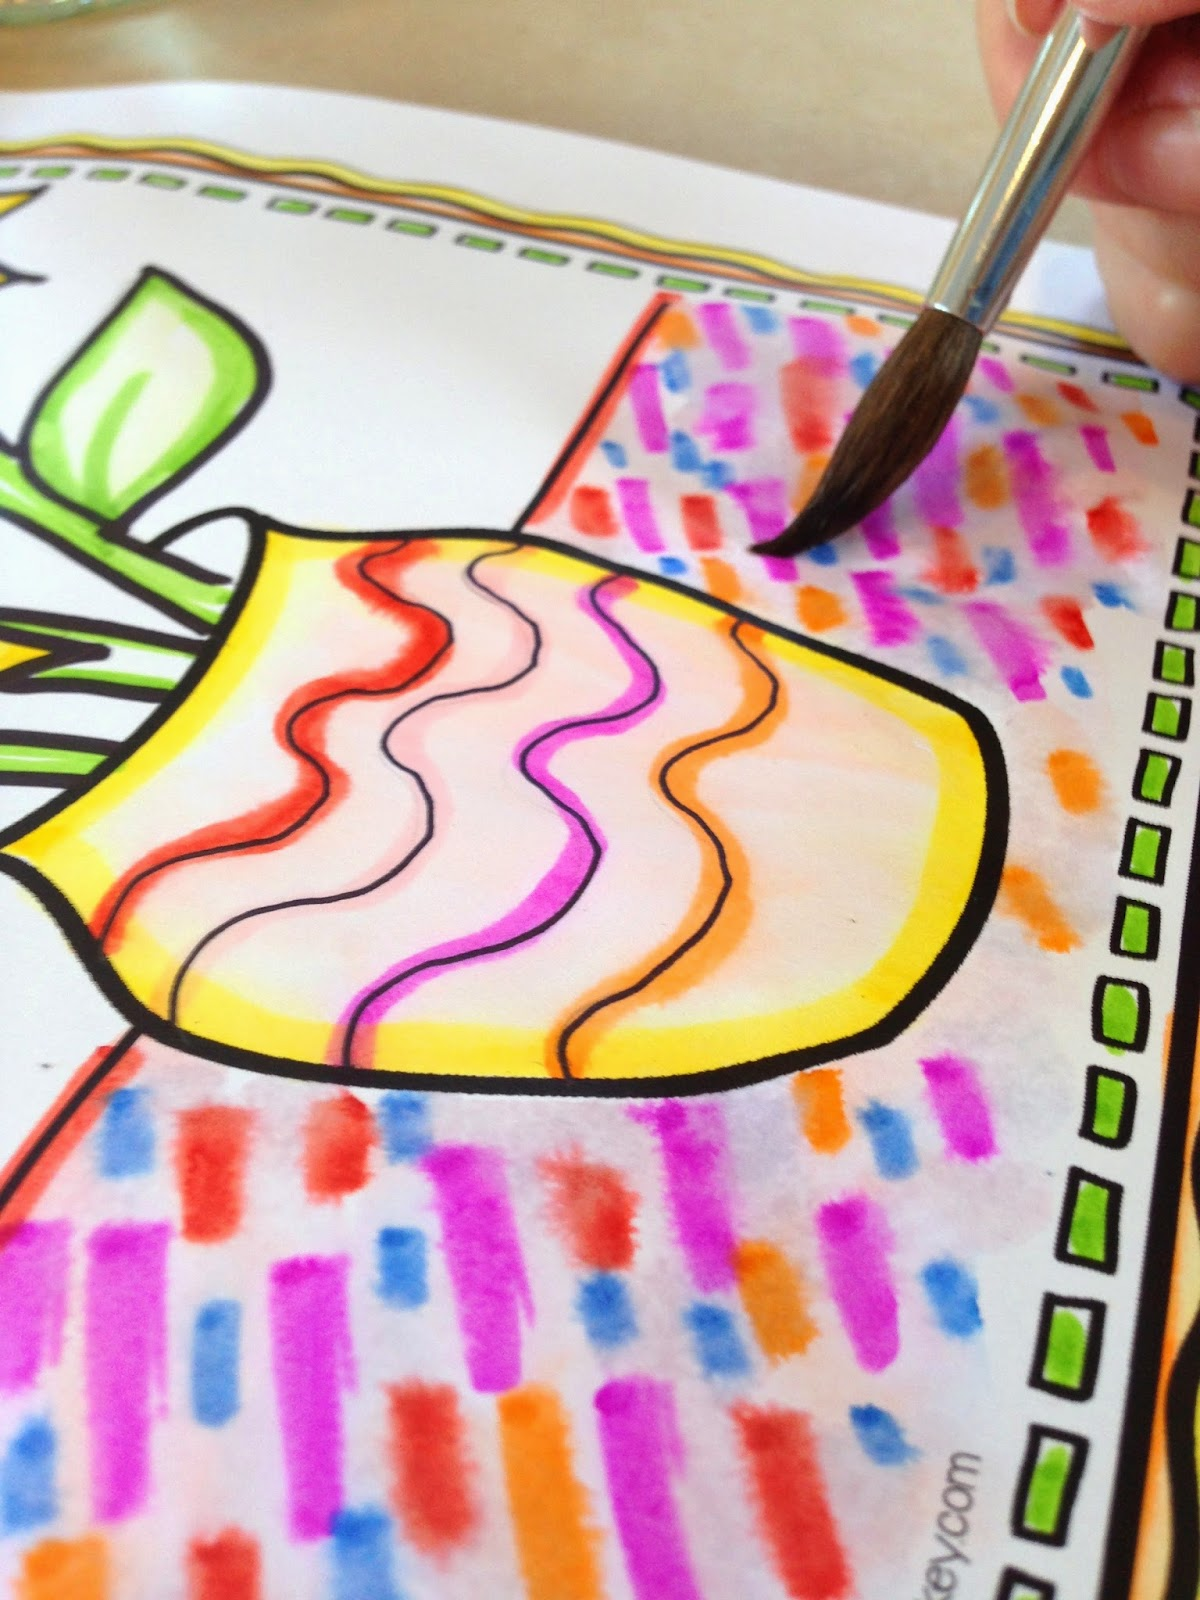 Expressive Monkey demonstrates how to use markers and water on a sunflower drawing.